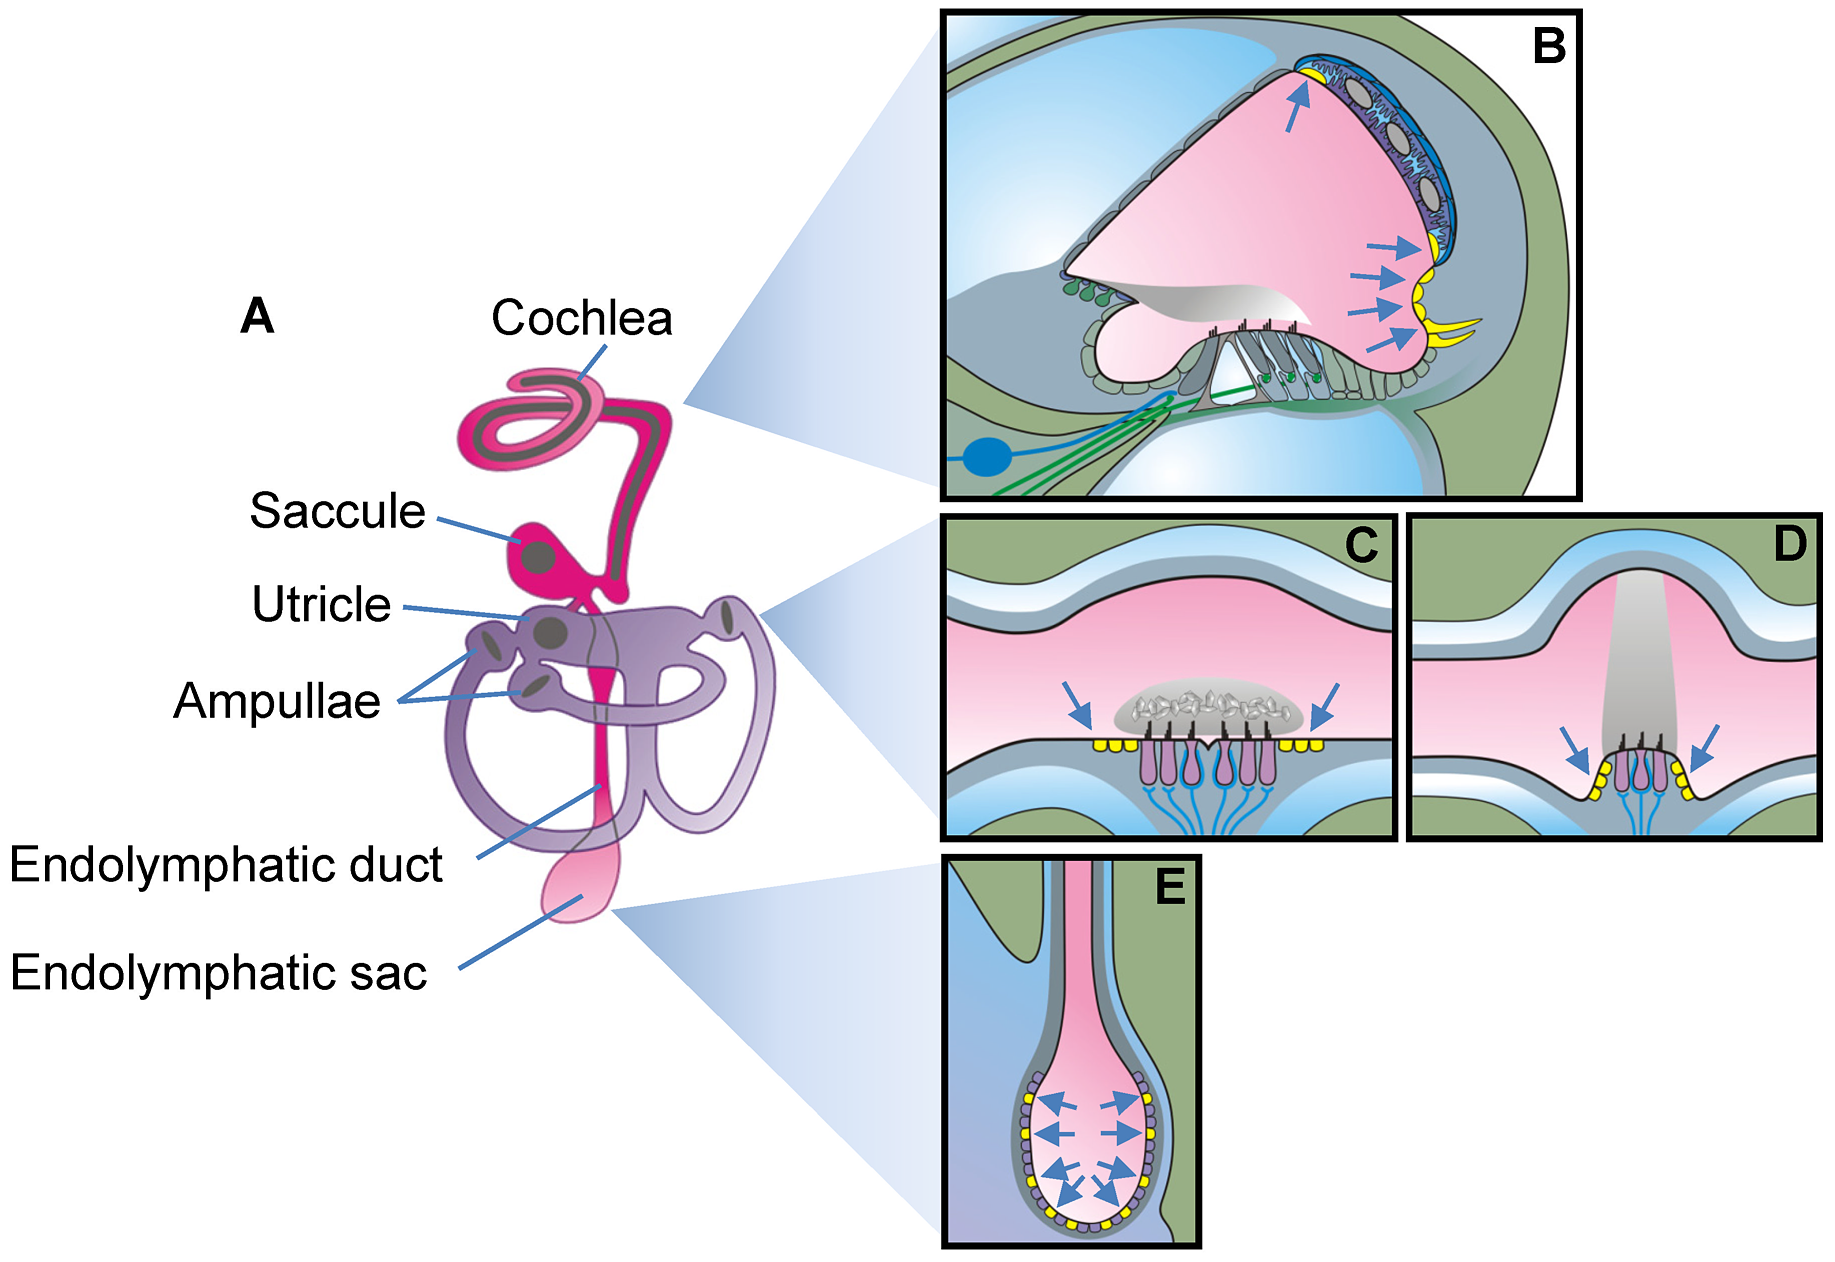 Schematic diagram of the inner ear.